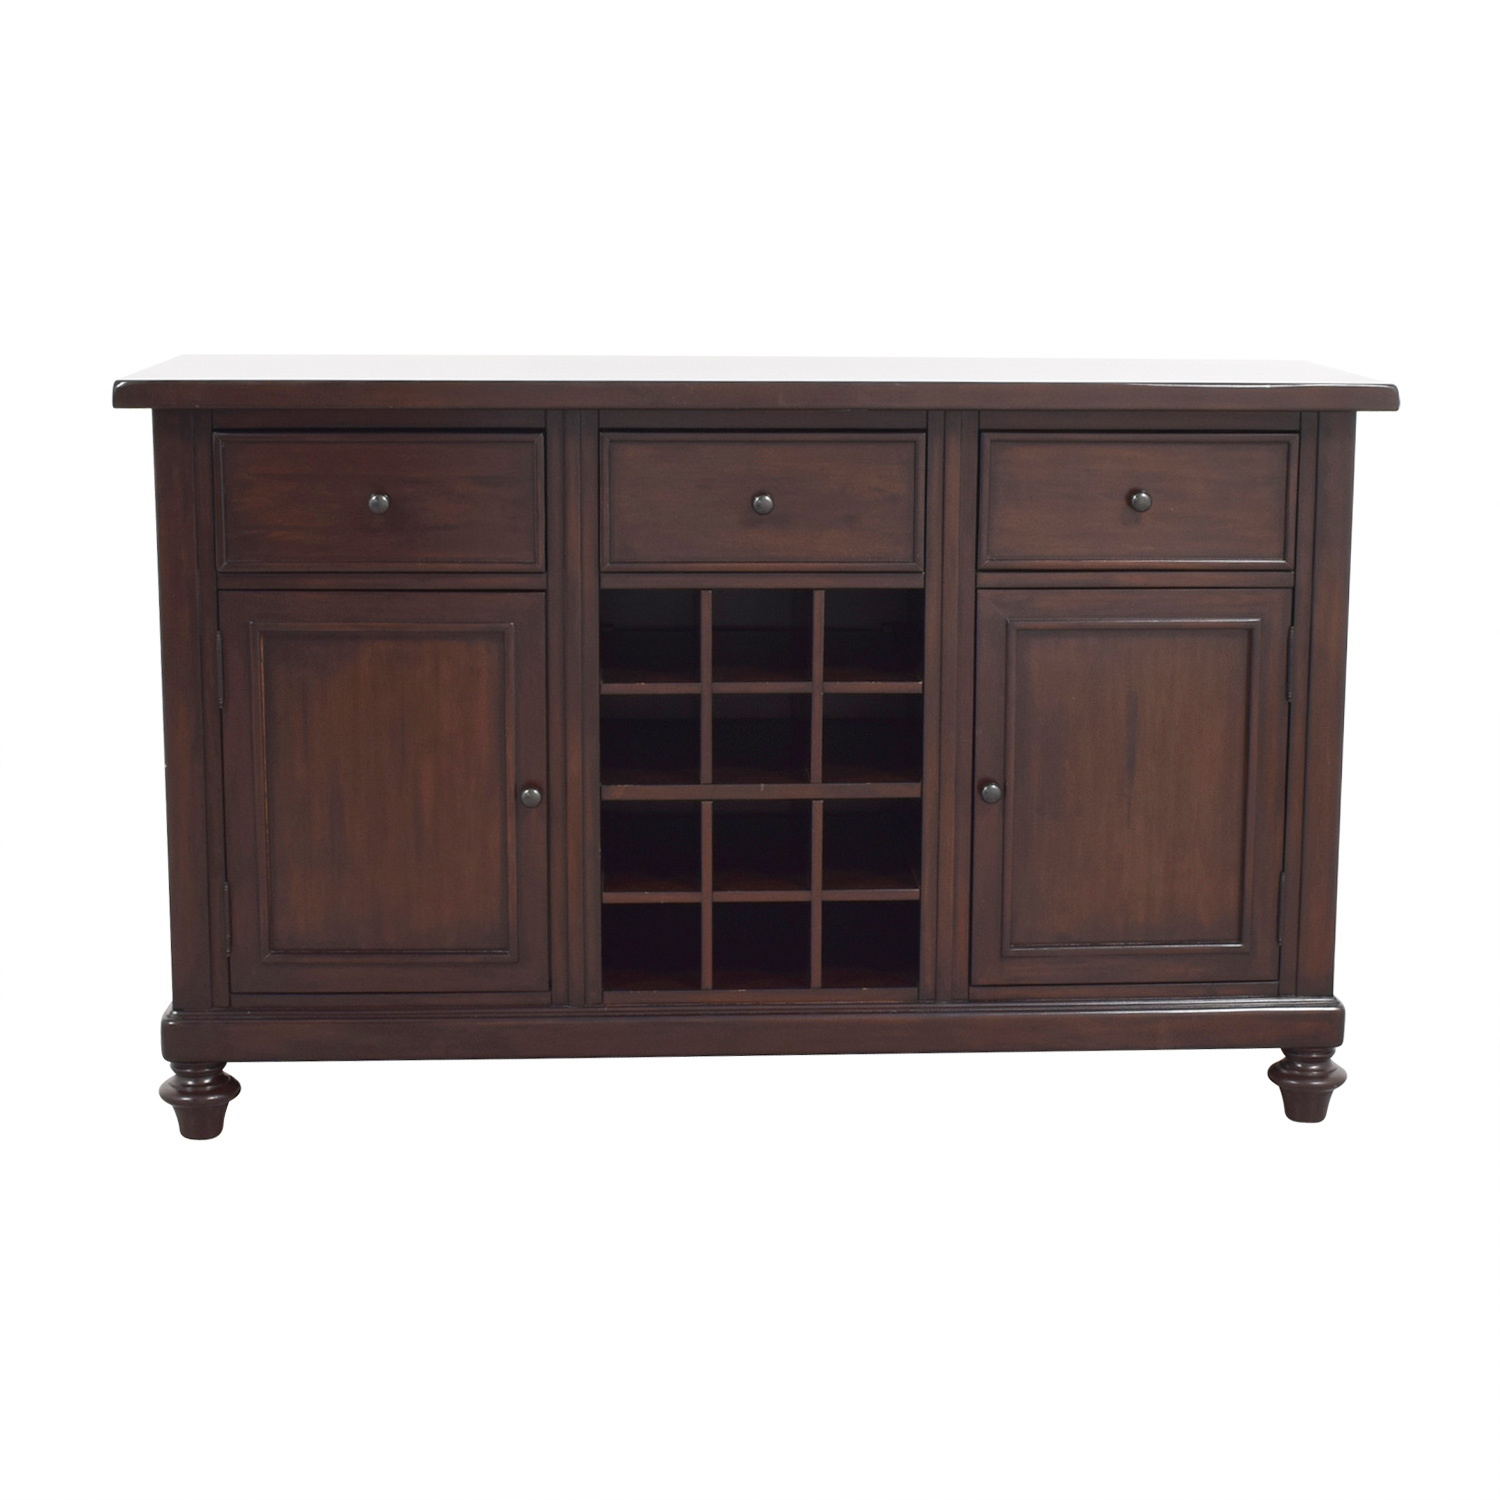 Pottery Barn Pottery Barn Wood Bar with Wine Storage Mahogany